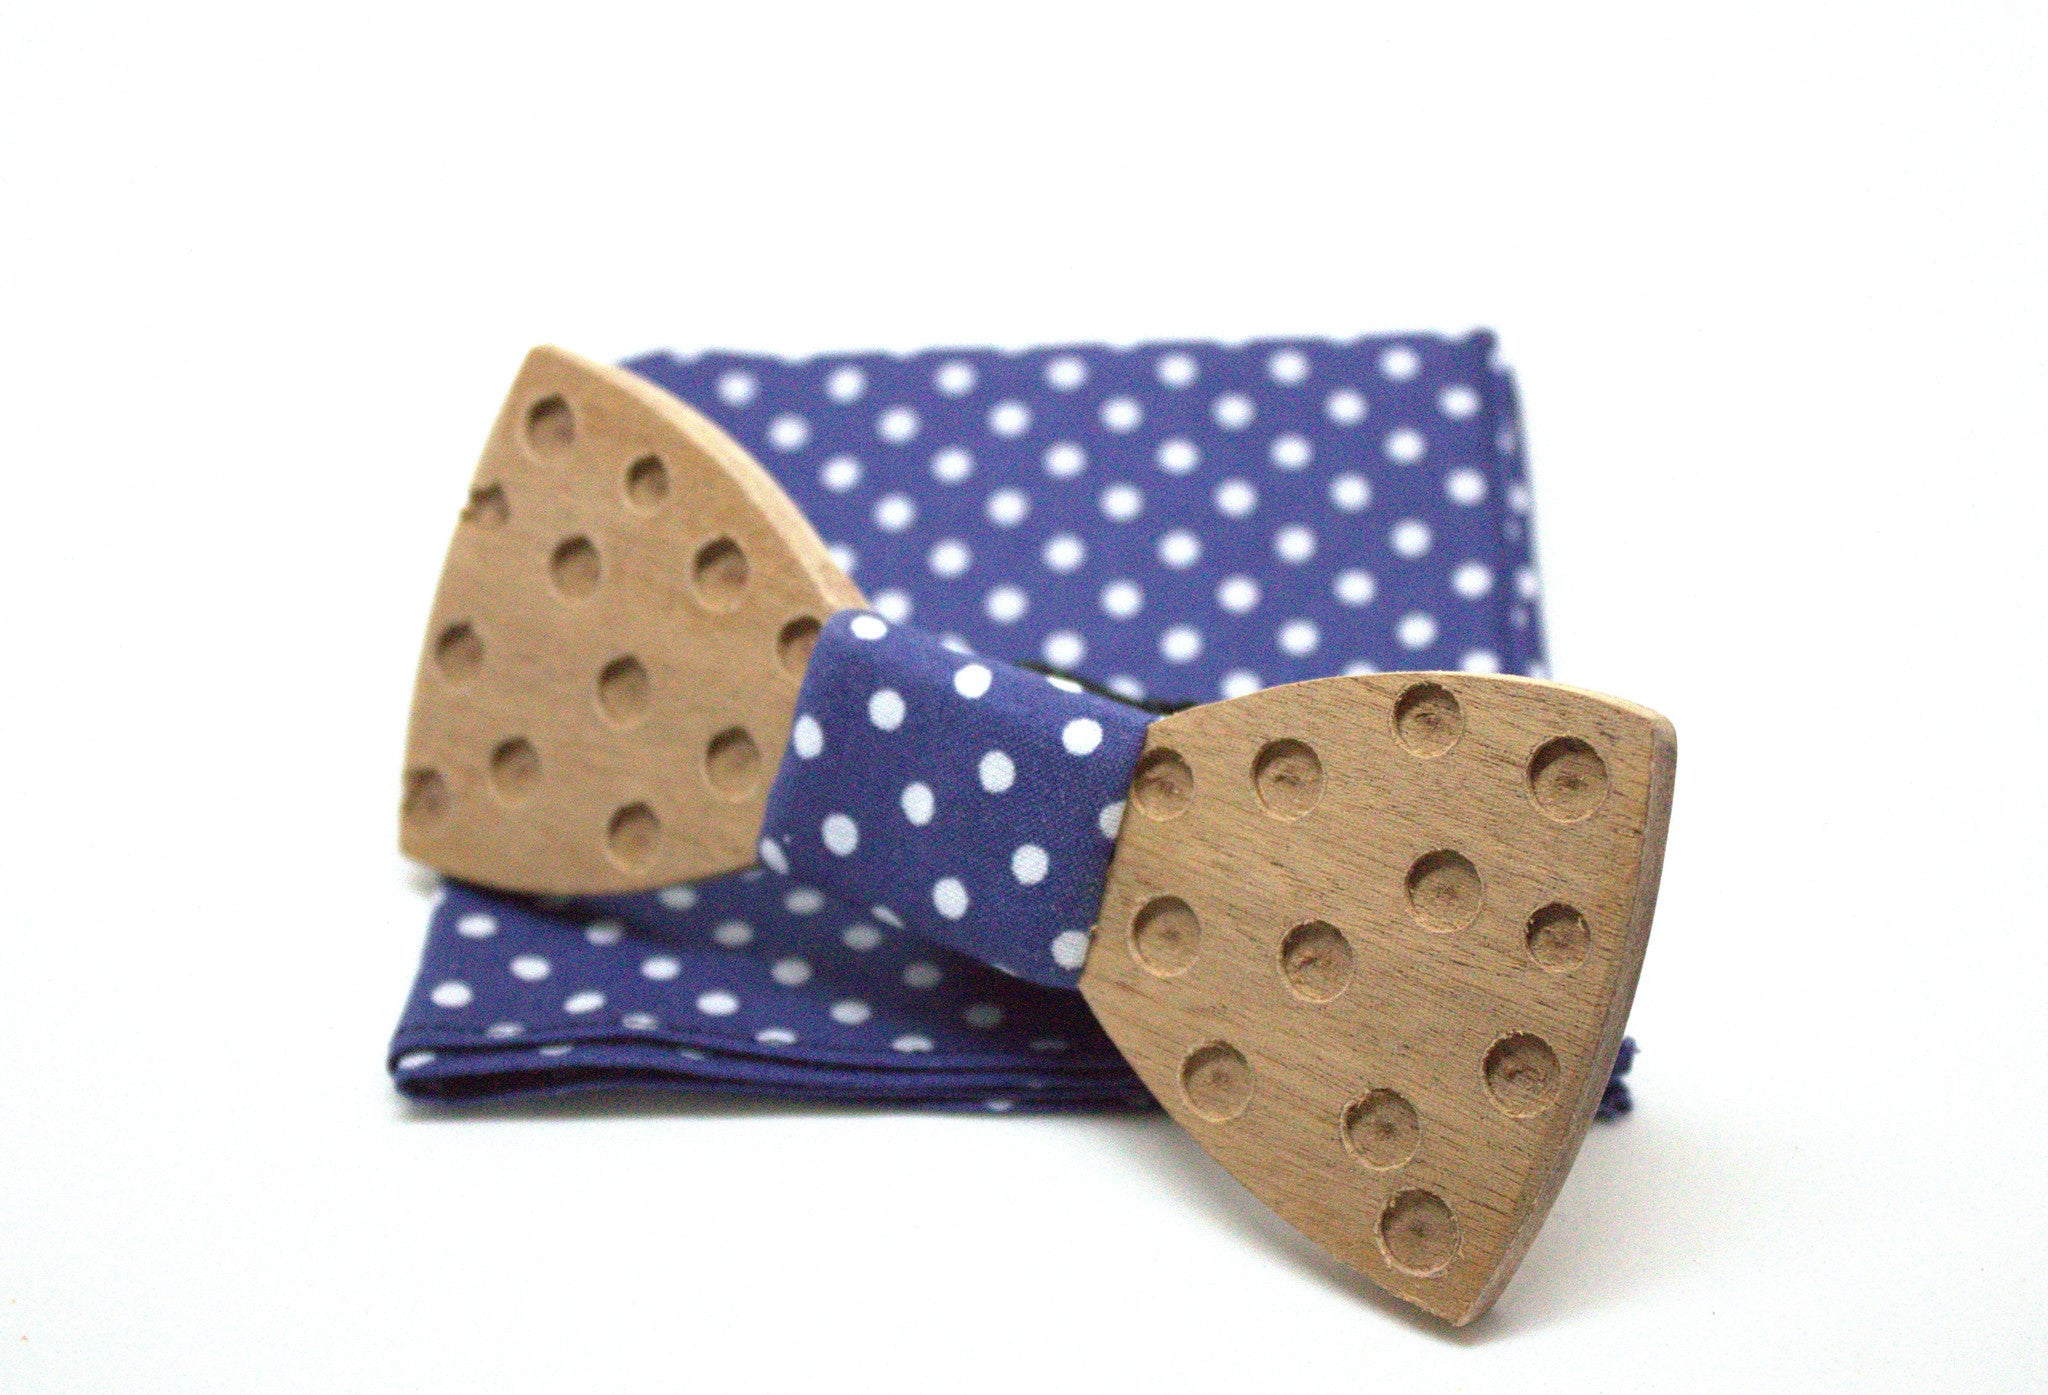 Polka dot on Polka dot sapelli wood